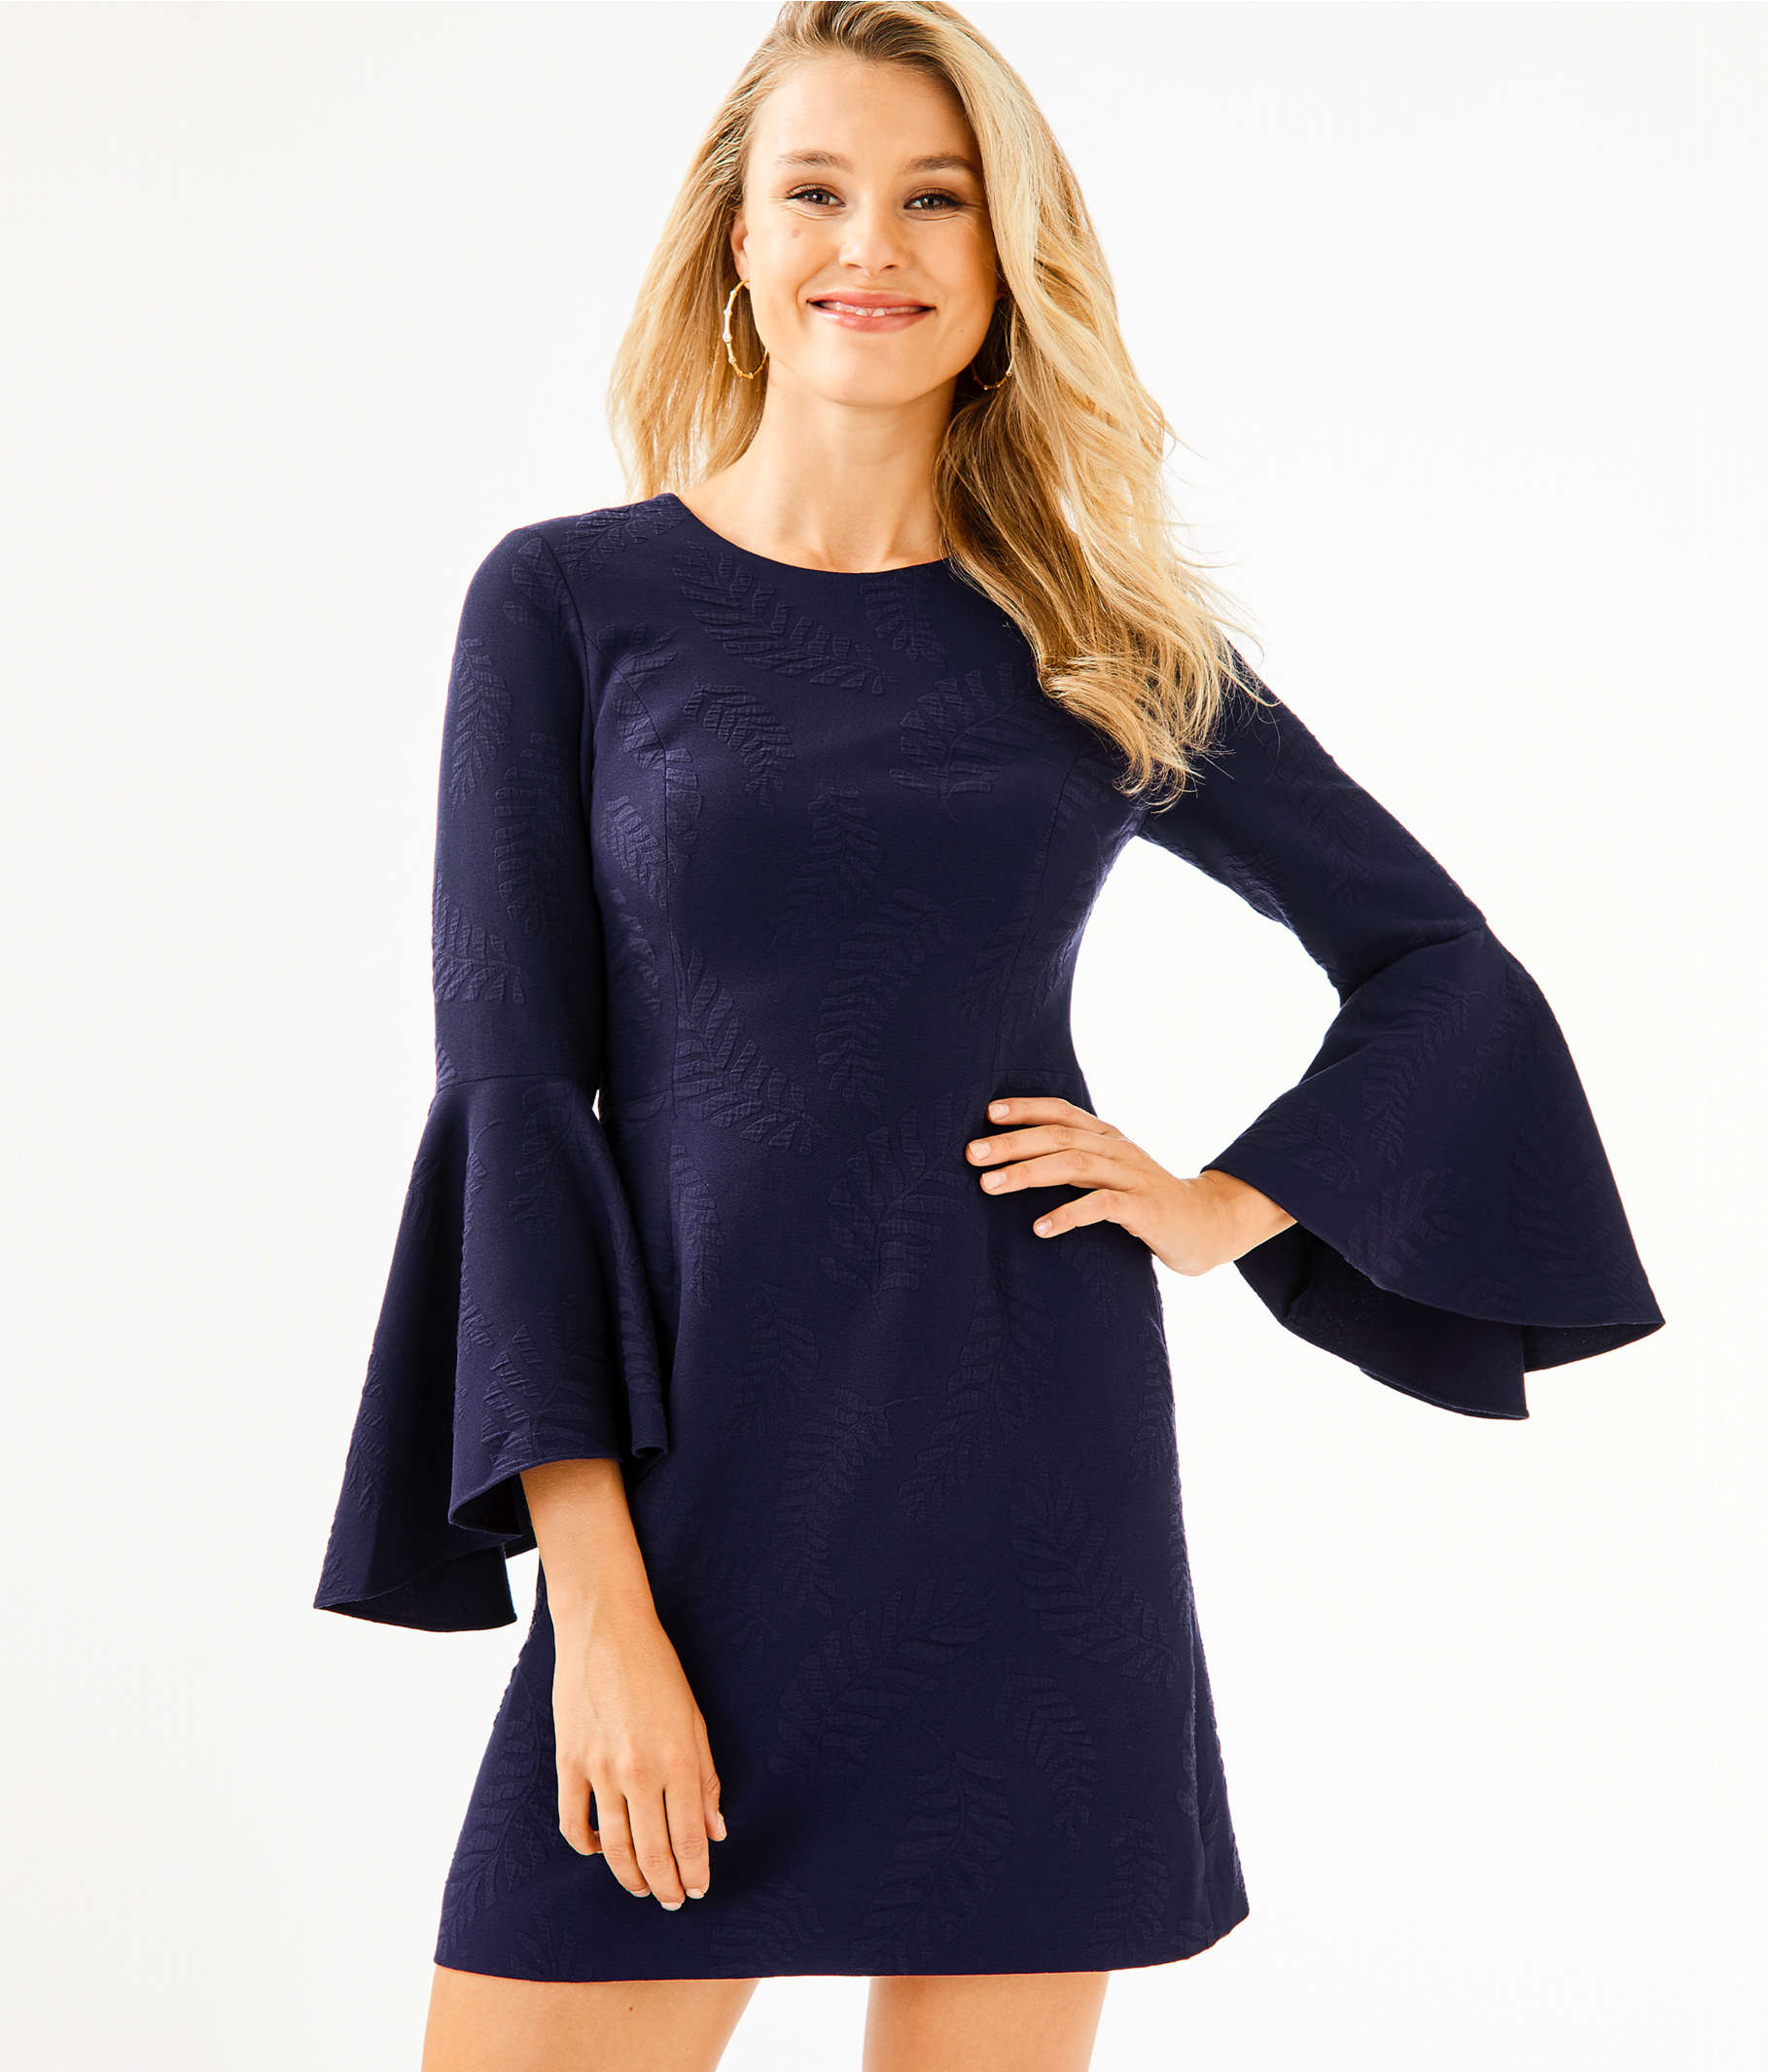 Kayla Stretch Dress, APS $54, Originally $198